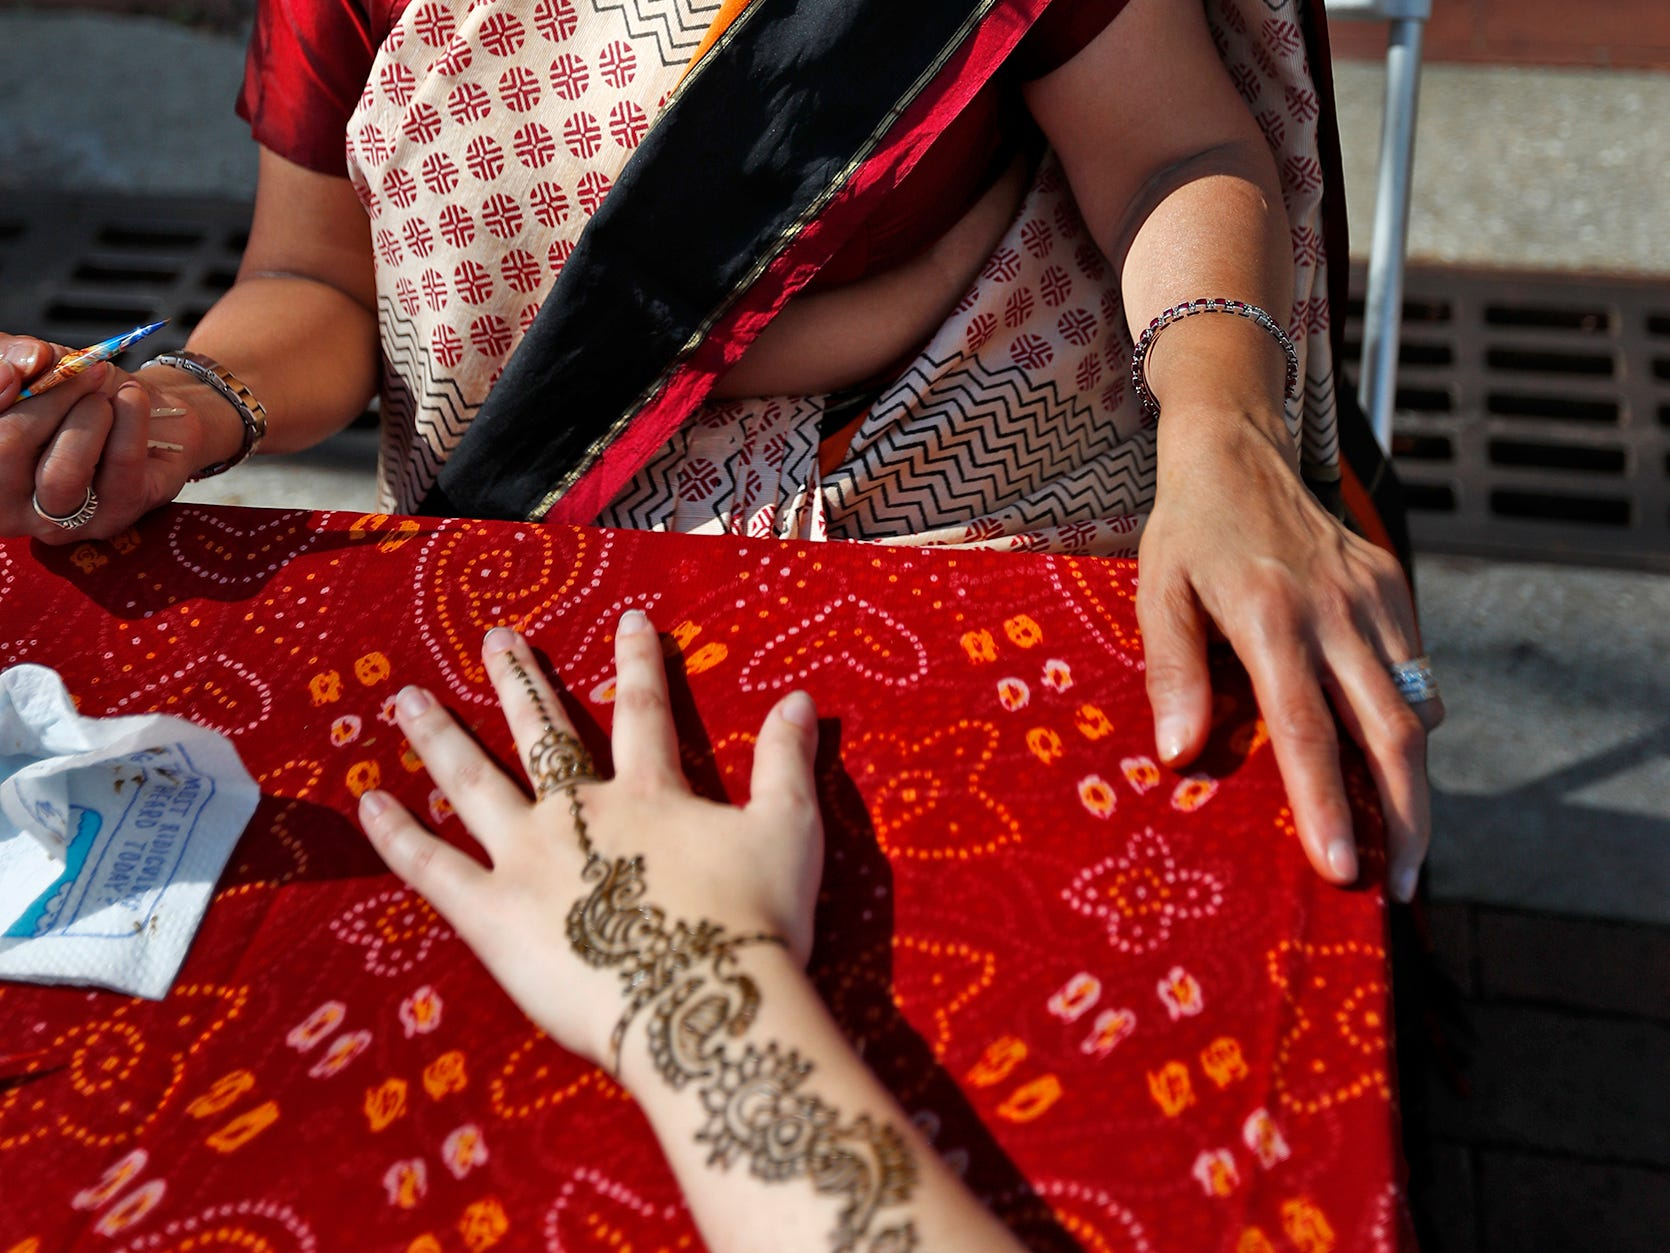 Parul Shah, left, smiles after finishing a henna tattoo on Libby Hancock during the YMCA World Fest, on Monument Circle, Thursday, Sept. 13, 2018. YMCA of Greater Indianapolis hosts the free event that celebrates cultures including international food vendors, music, sports, and performers.